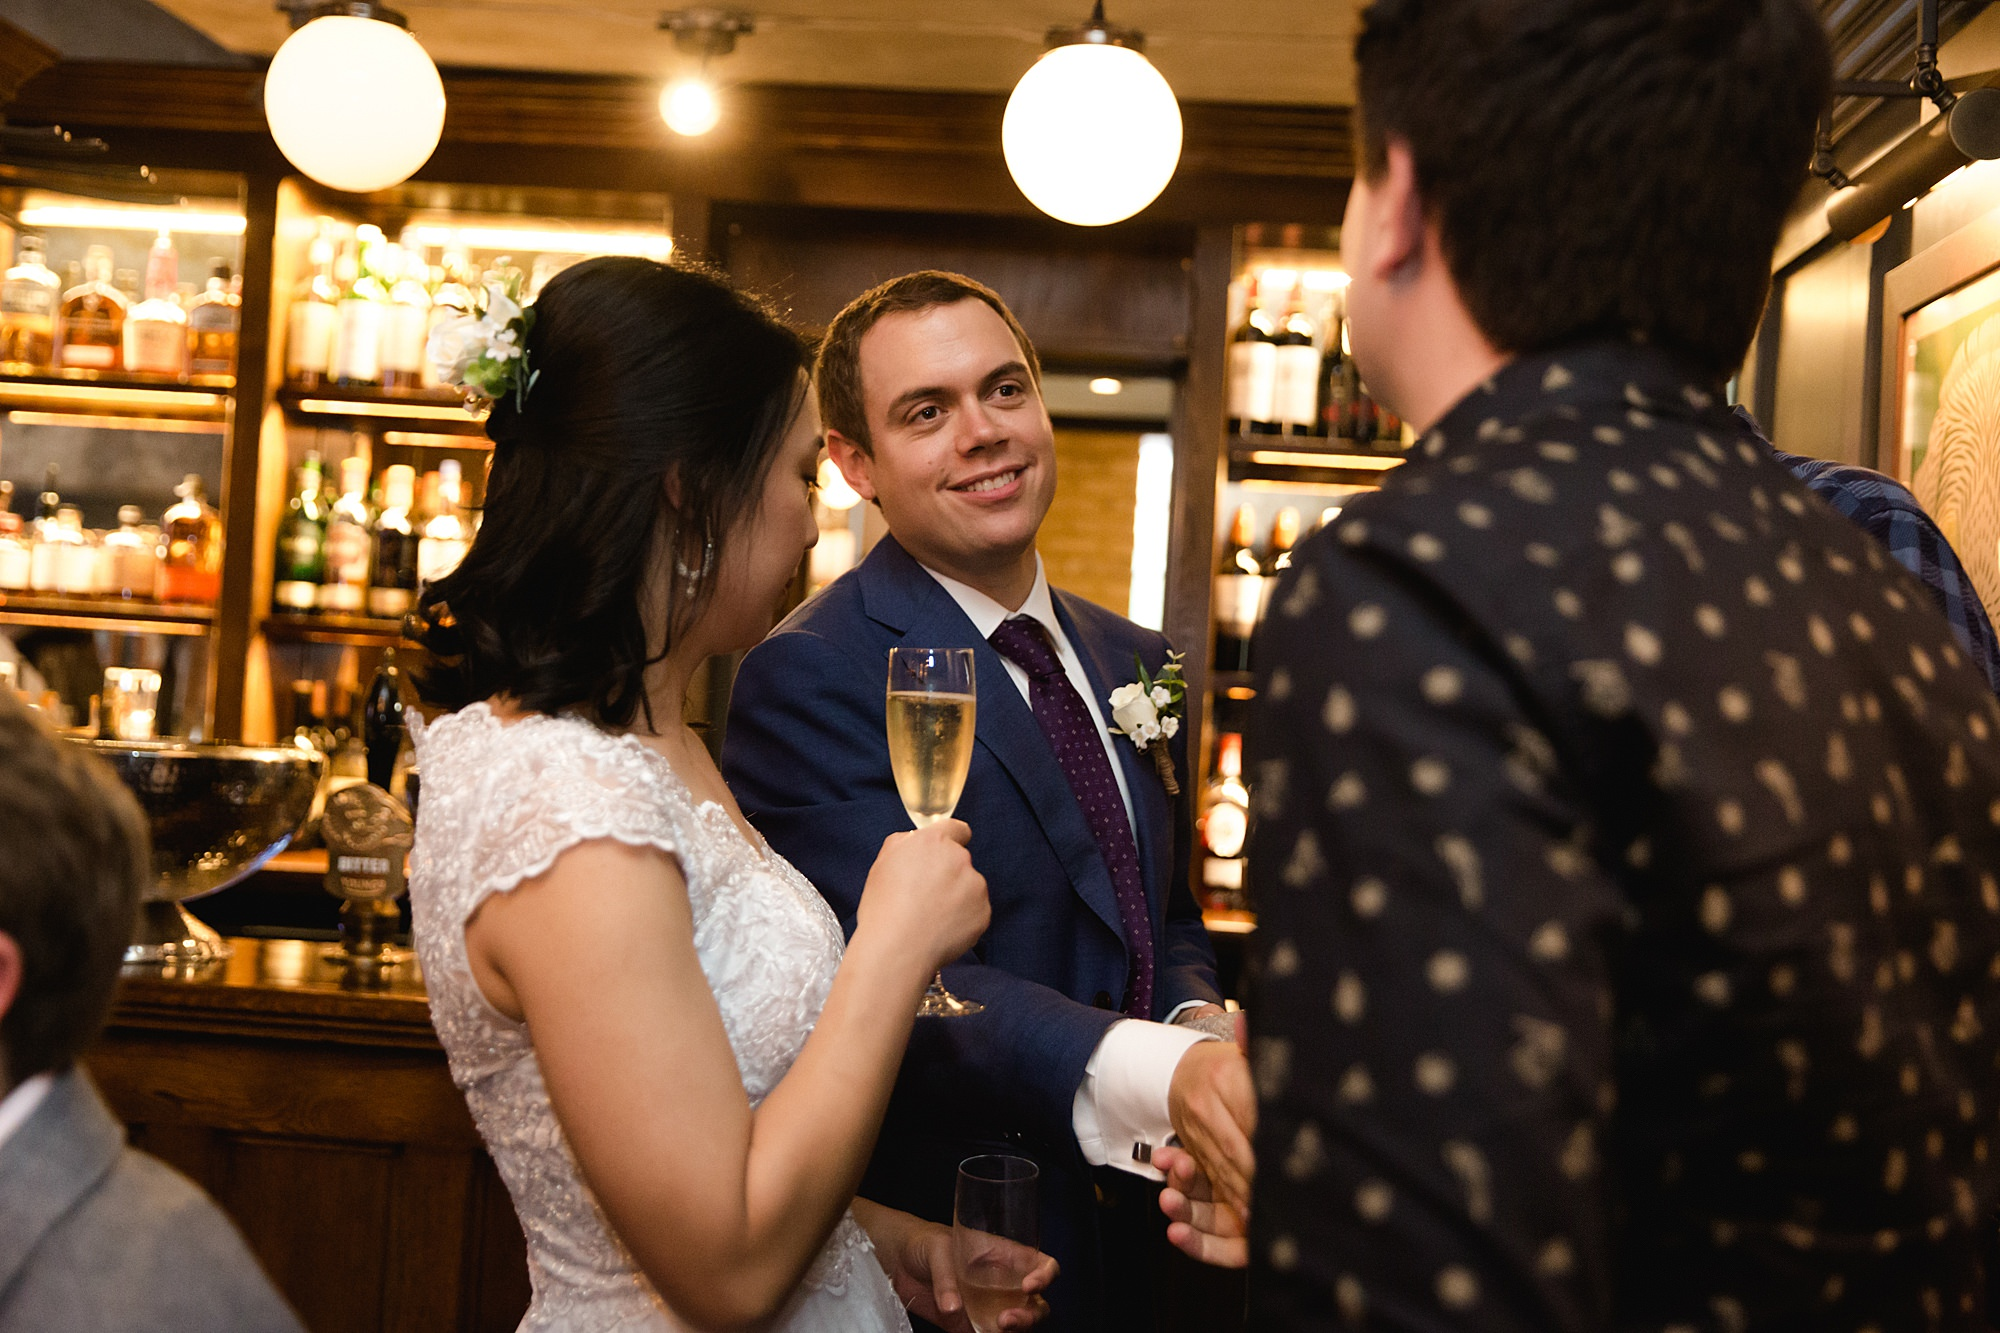 Wandsworth pub wedding groom chatting with guests